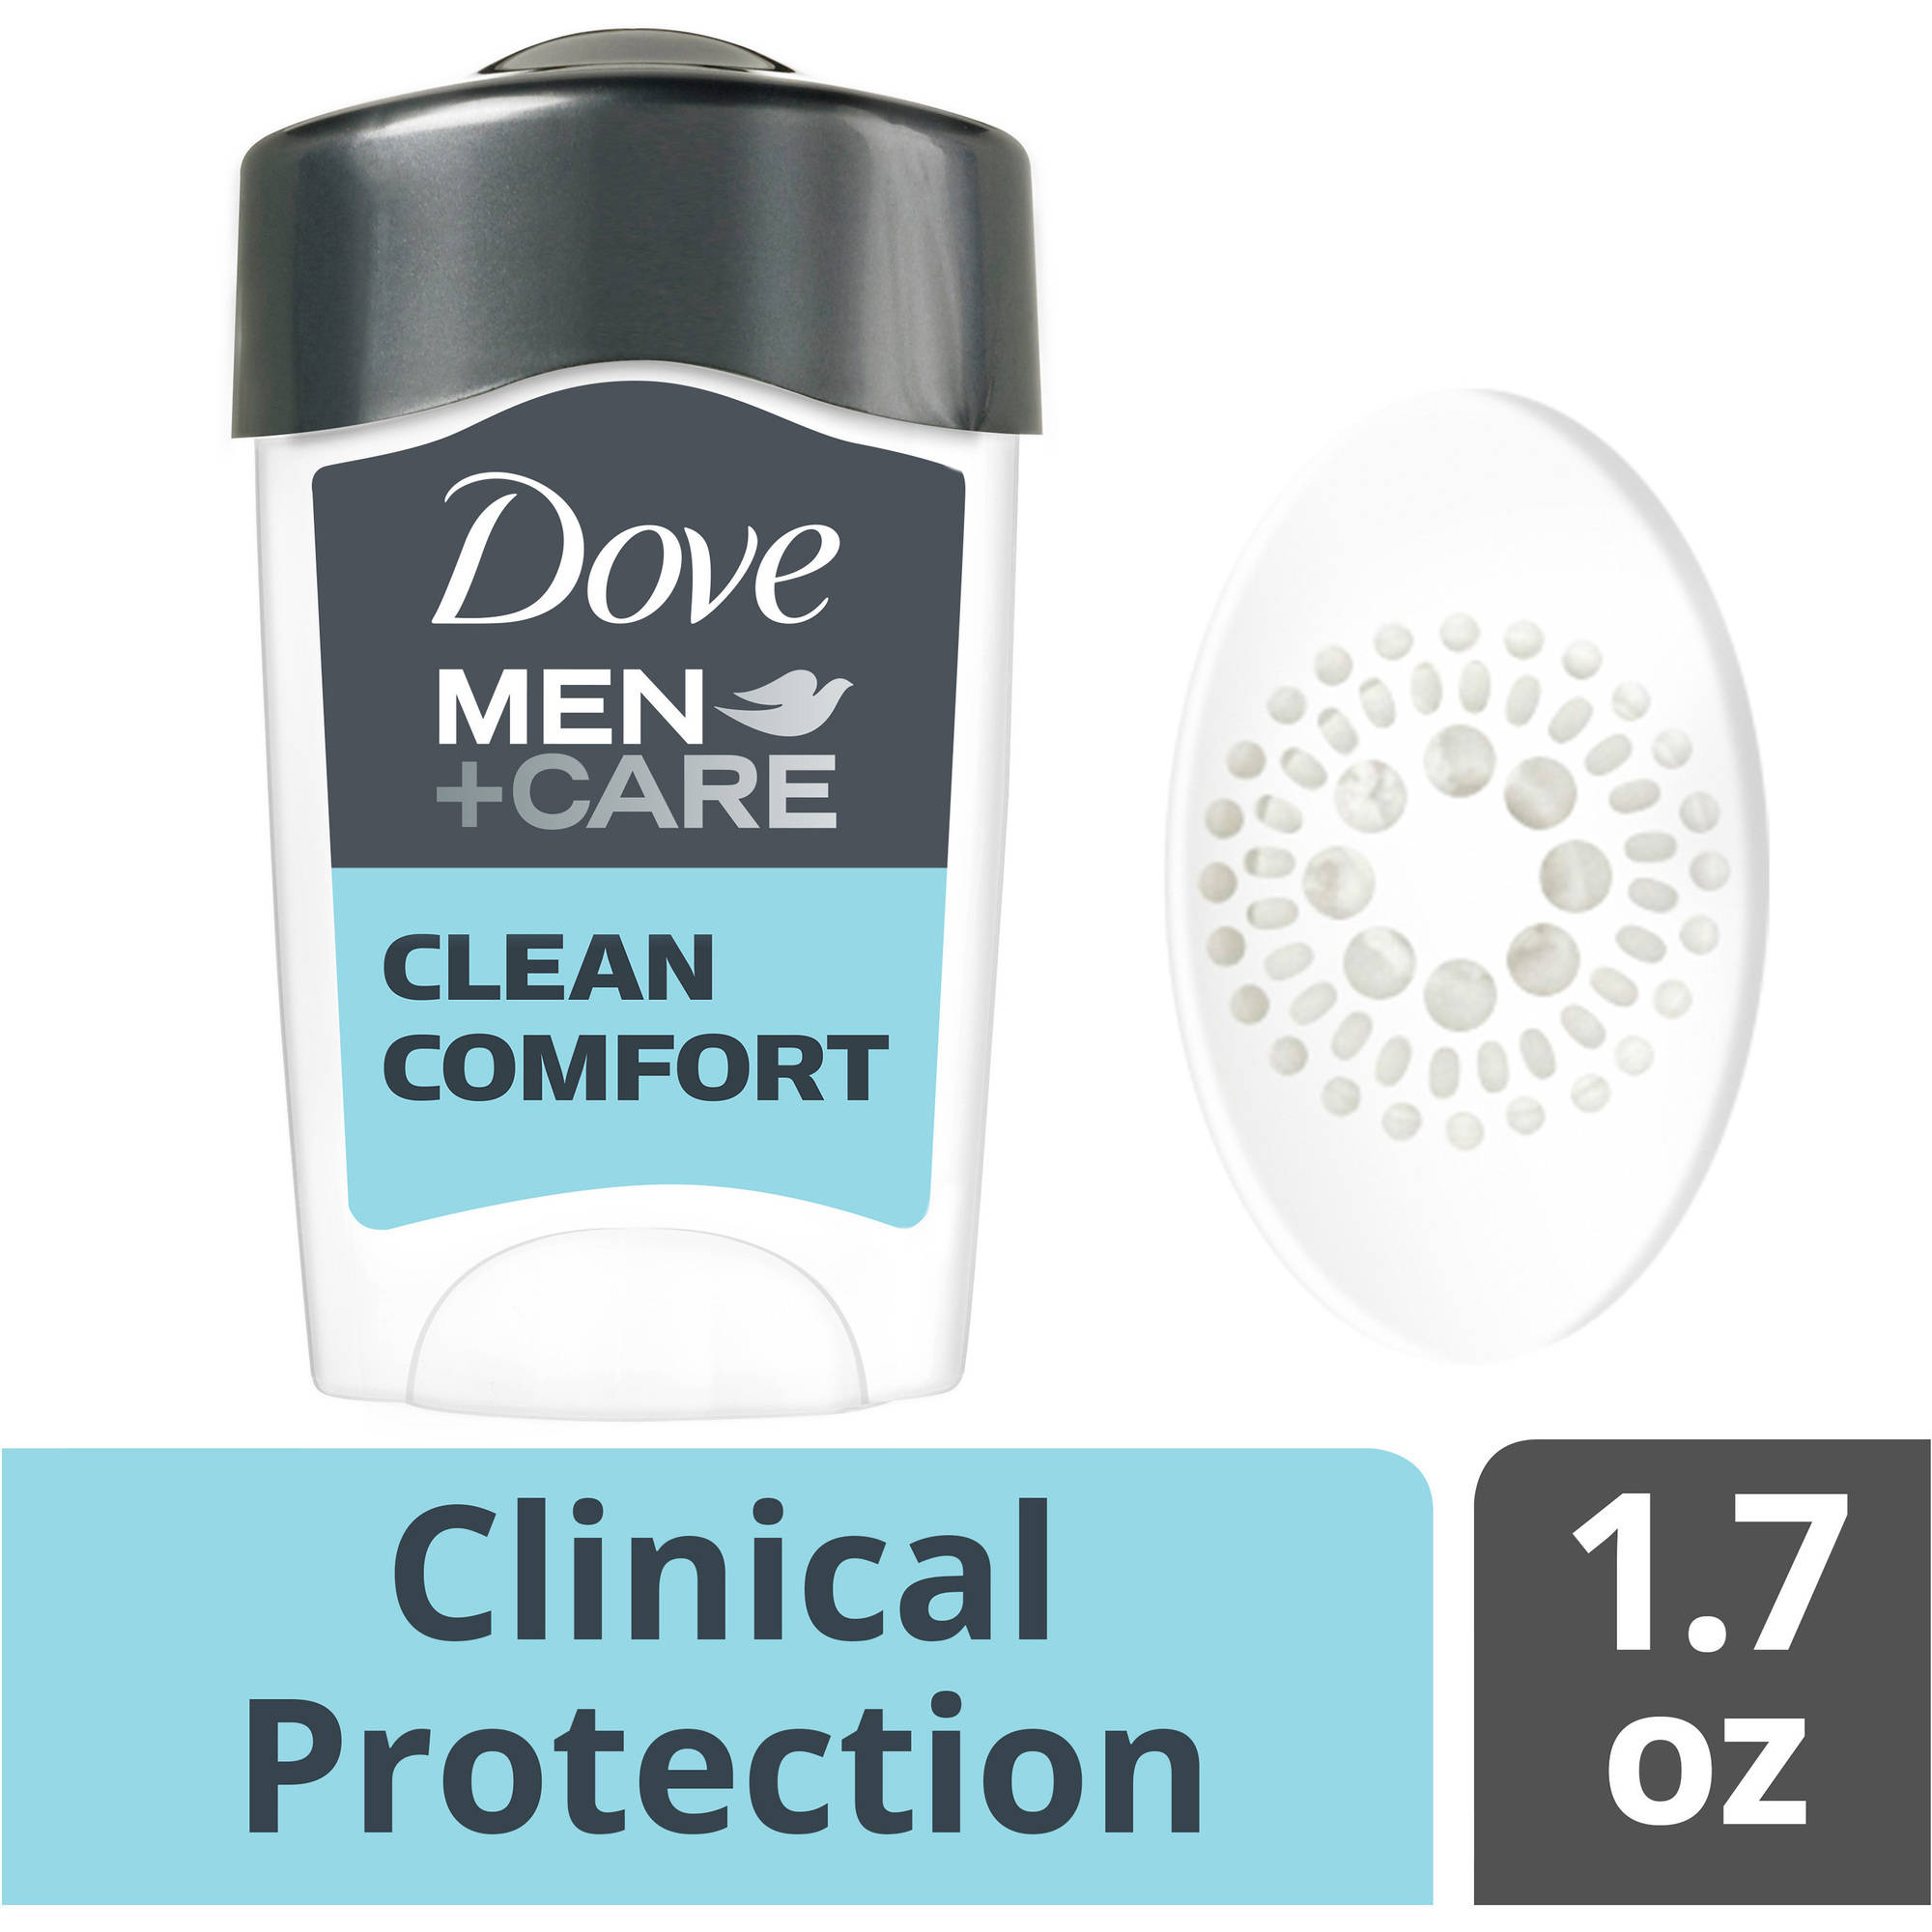 Dove Men Care Clinical Protection Clean Comfort Antiperspirant Deodorant, 1.7 oz